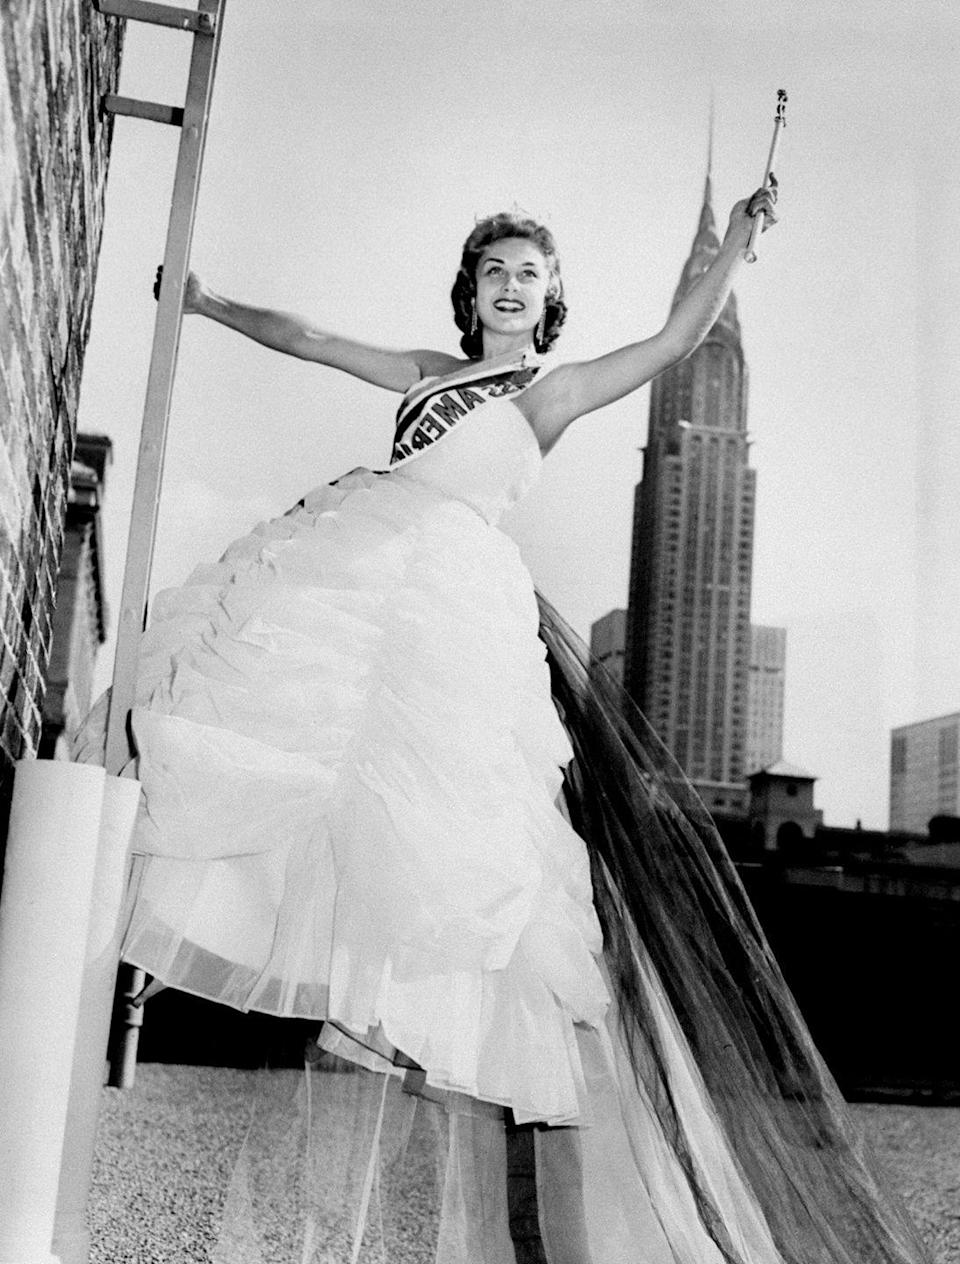 <p>Marian McKnight was South Carolina's first Miss America winner. She donned a tulle-filled dress in front of the Empire State Building.</p>